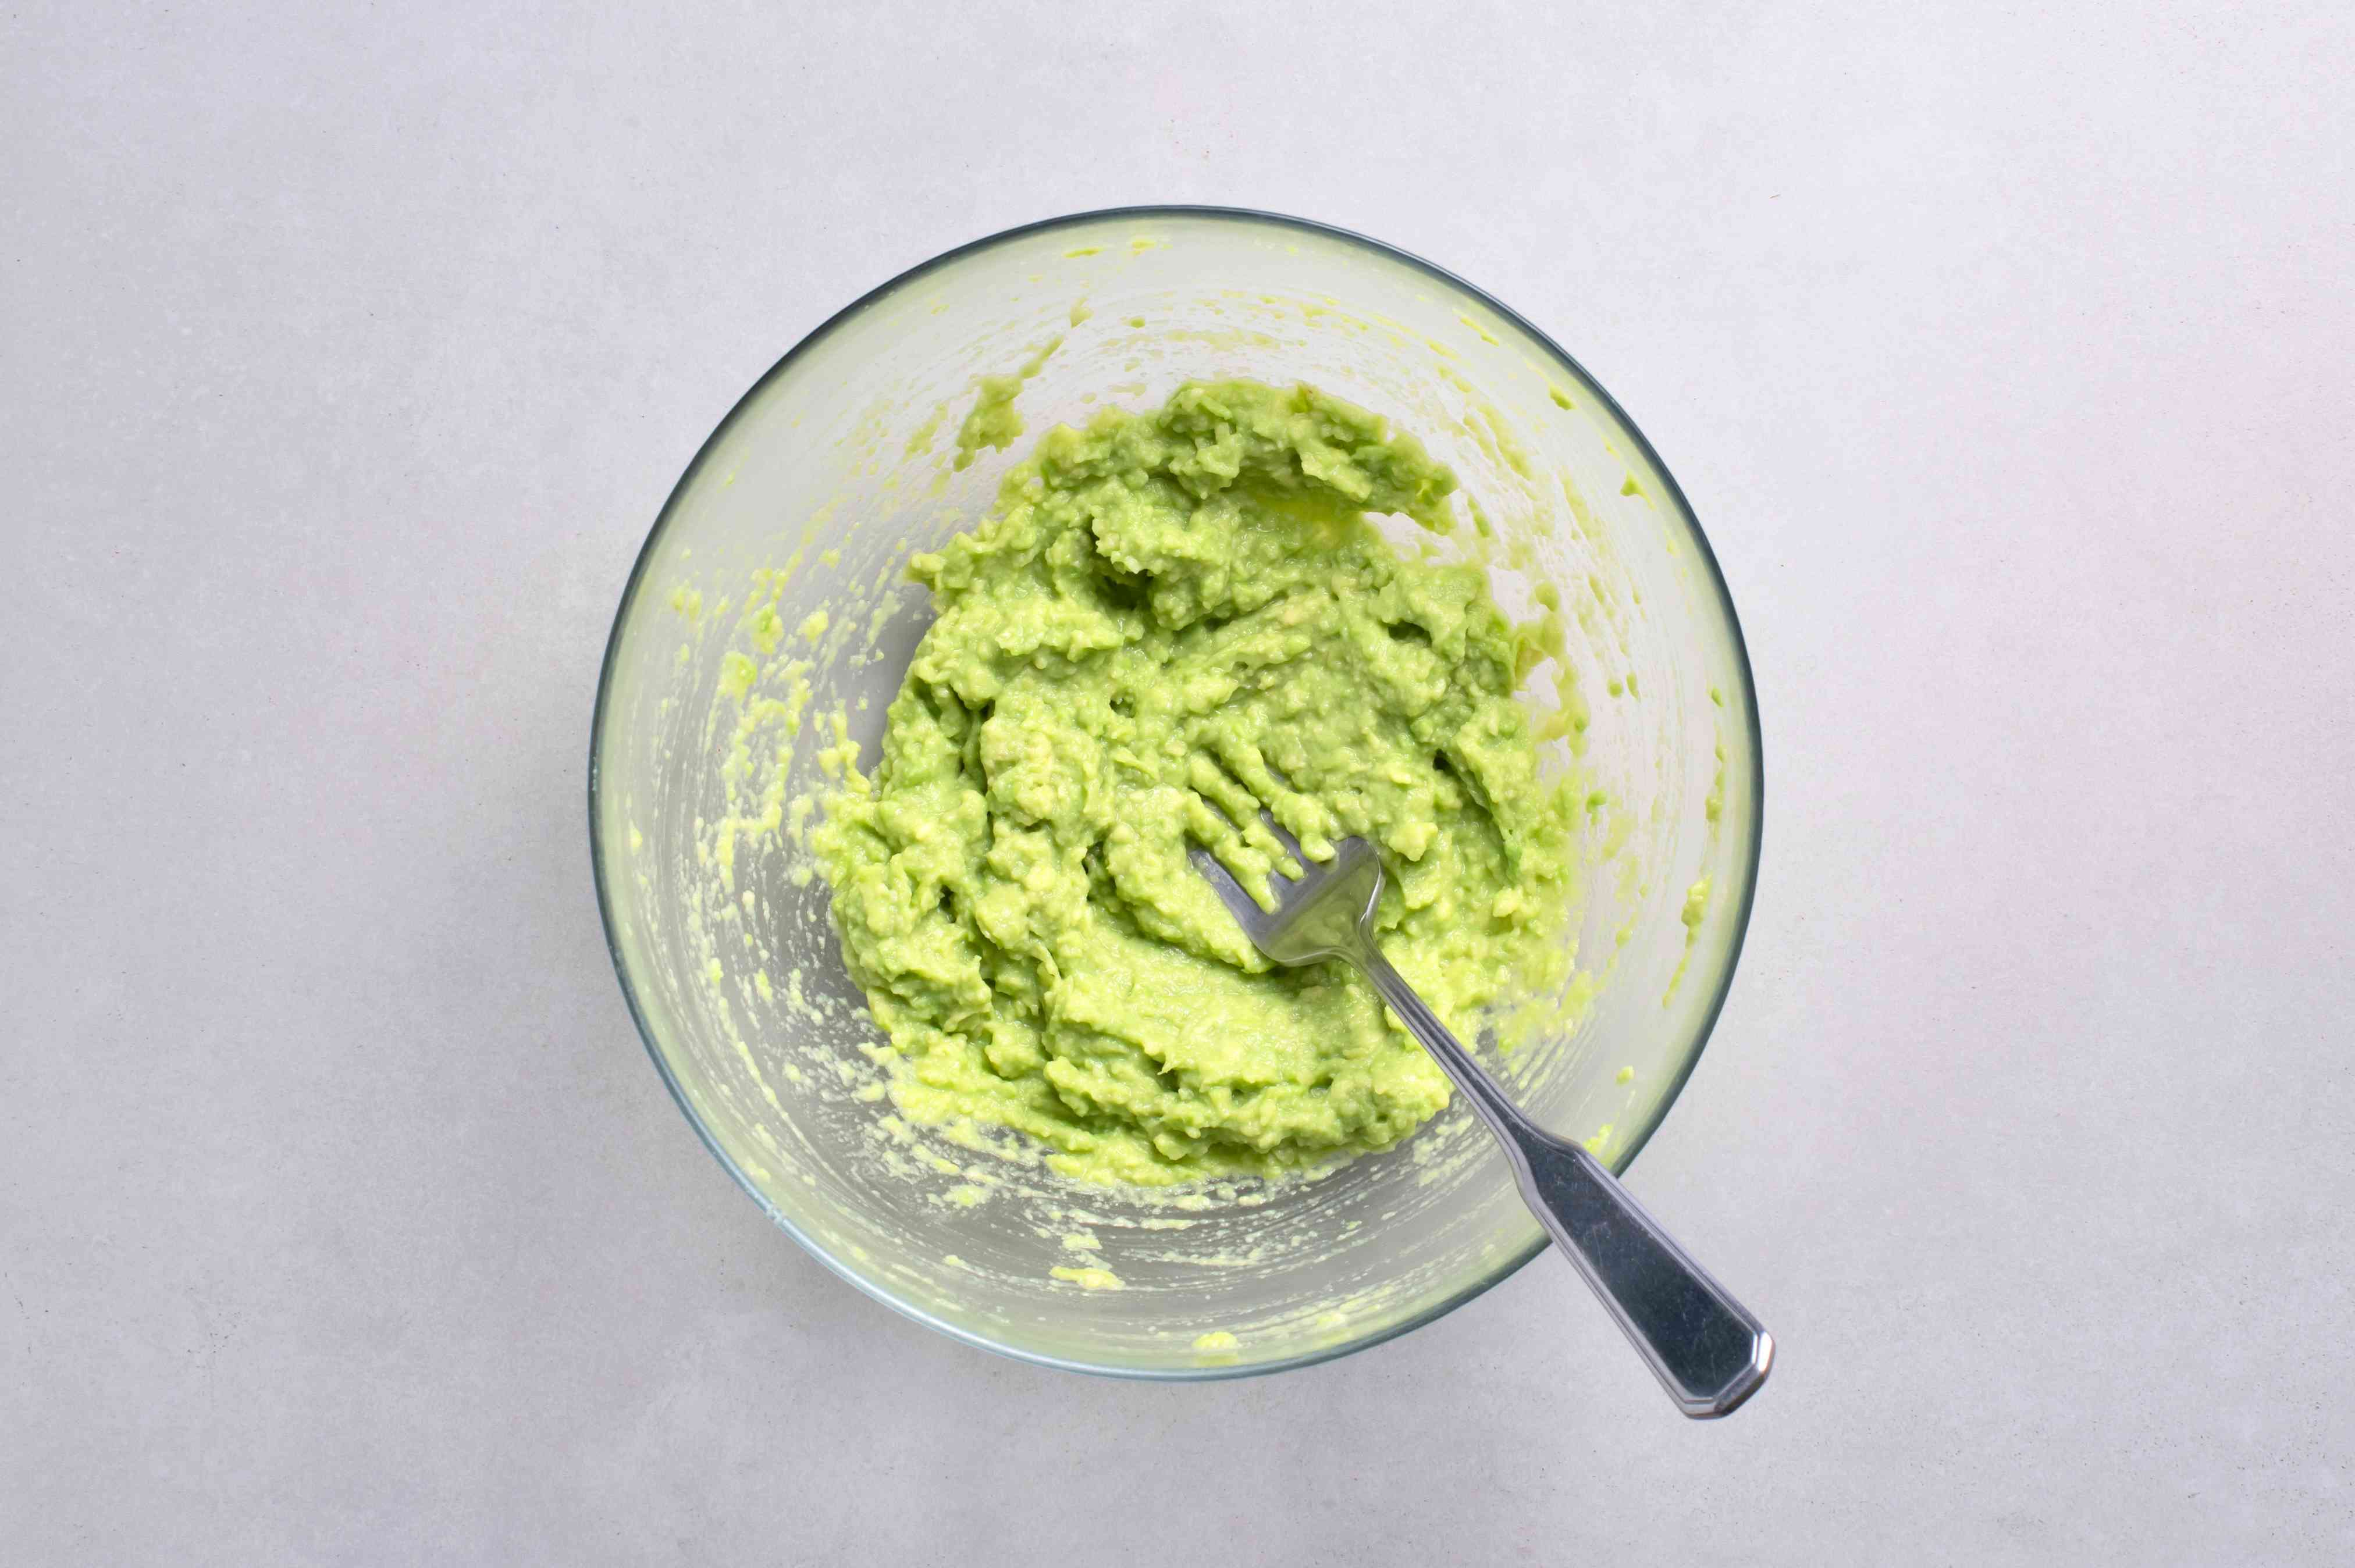 Avocado mashed in a bowl